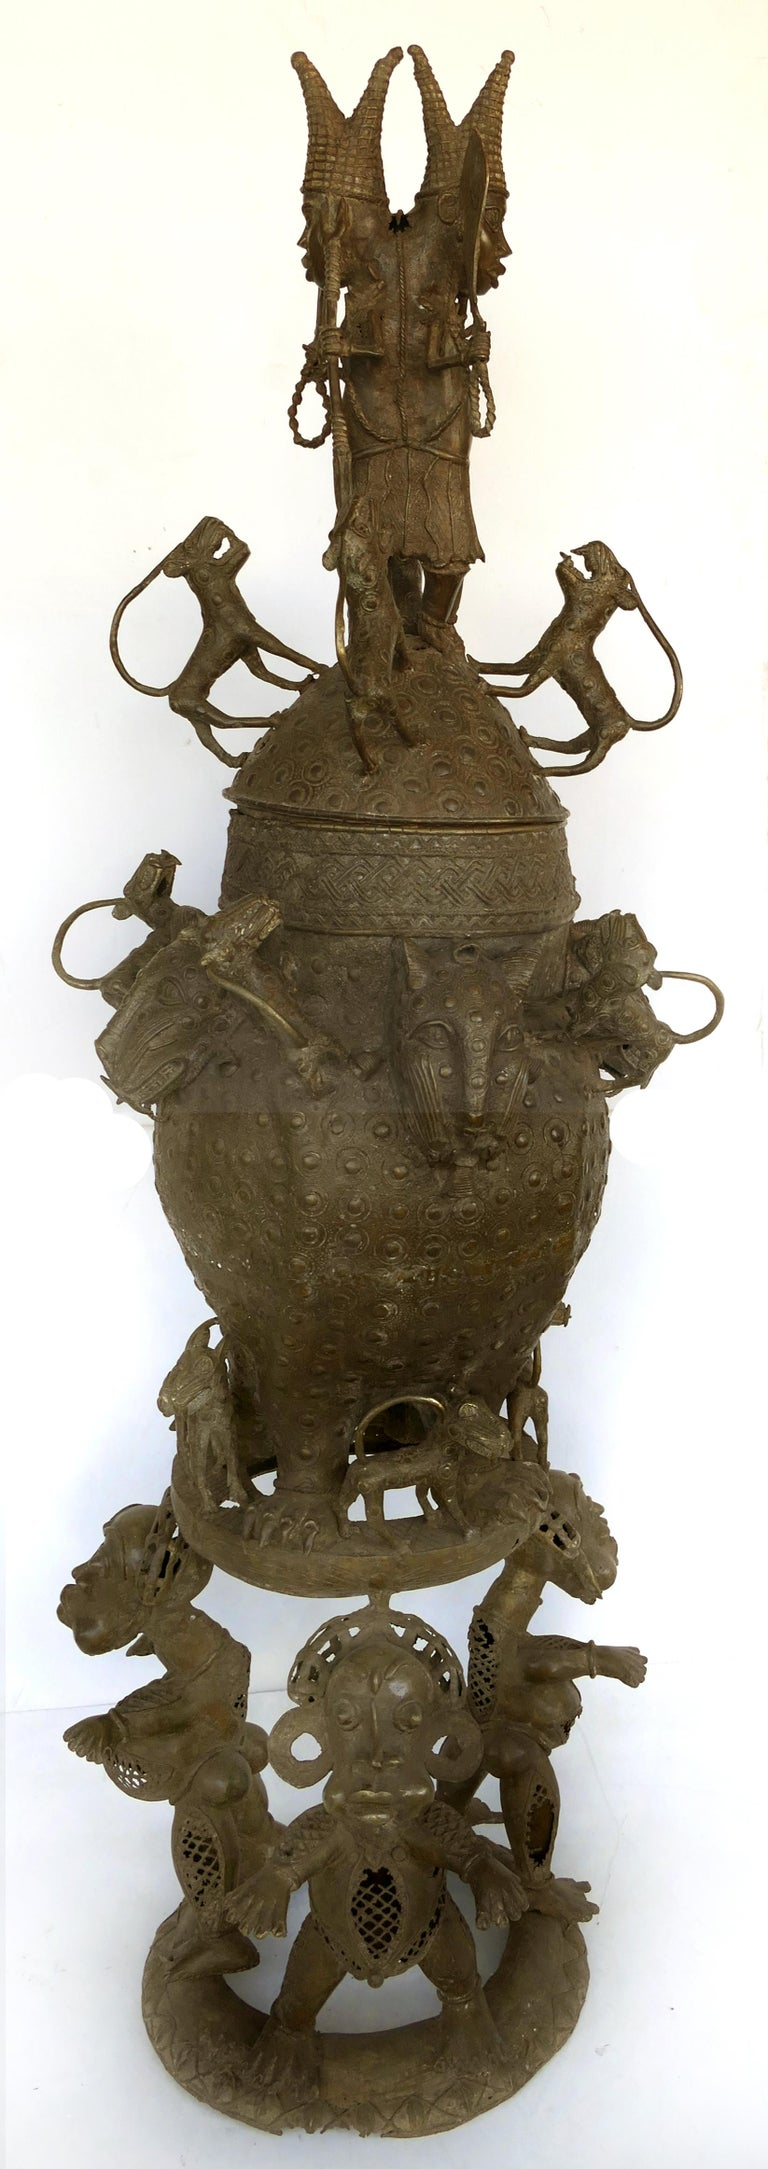 Mid-20th century Benin (Nigeria)bronze figural offering depicting leopards and tribesmen    Offered for sale is a modern-day Benin (Nigeria) bronze figural offering depicting leopards and tribesmen. The modern-day Nigerian people have created